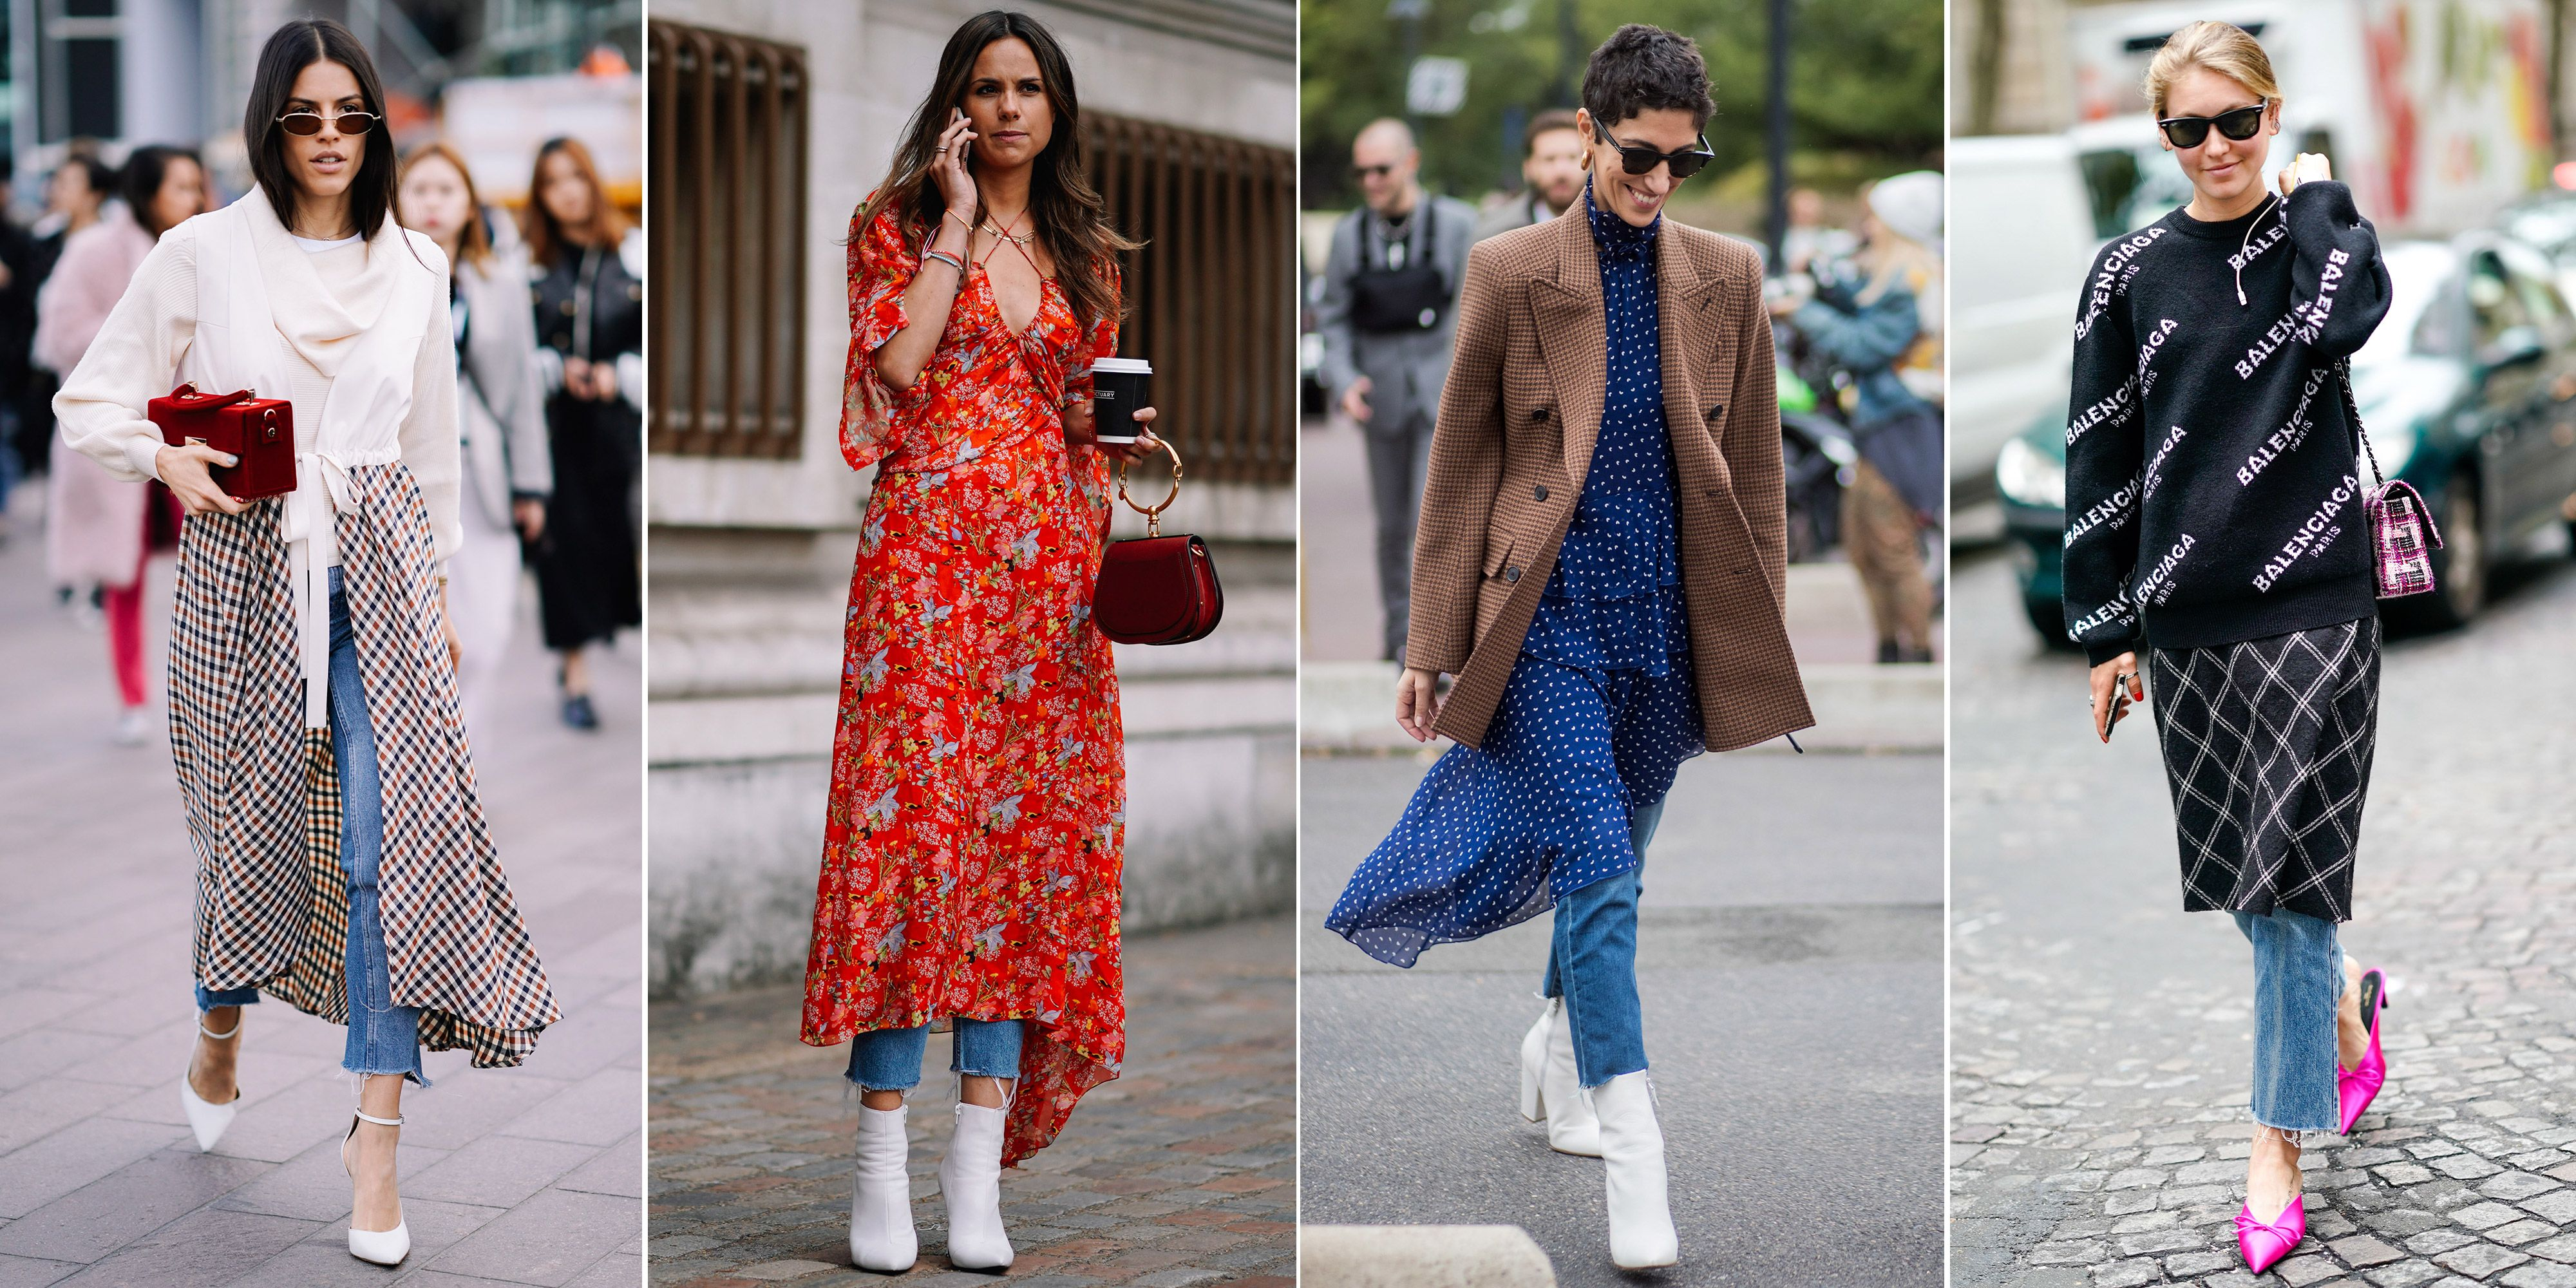 How To Wear Dresses Over Jeans Styling Advice For Wearing Trousers